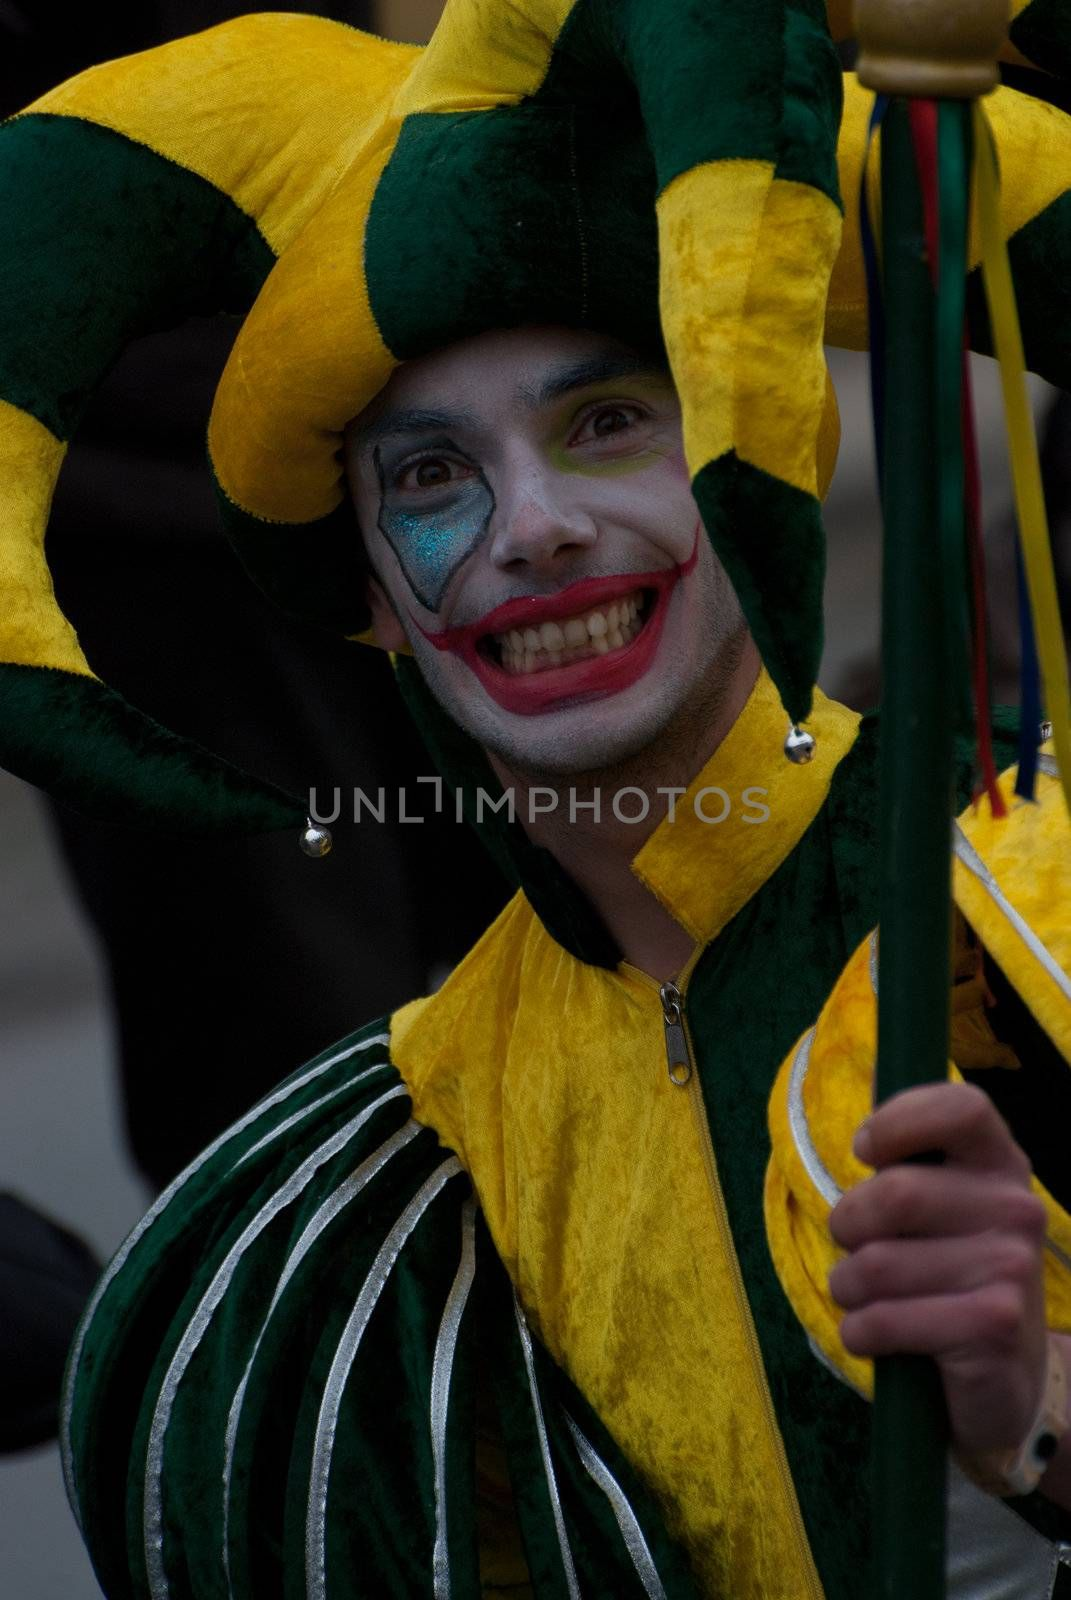 OVAR, PORTUGAL - MARCH 8: Group 'Catitas'  during the Carnival Parade on March 8, 2011 in Ovar, Portugal.